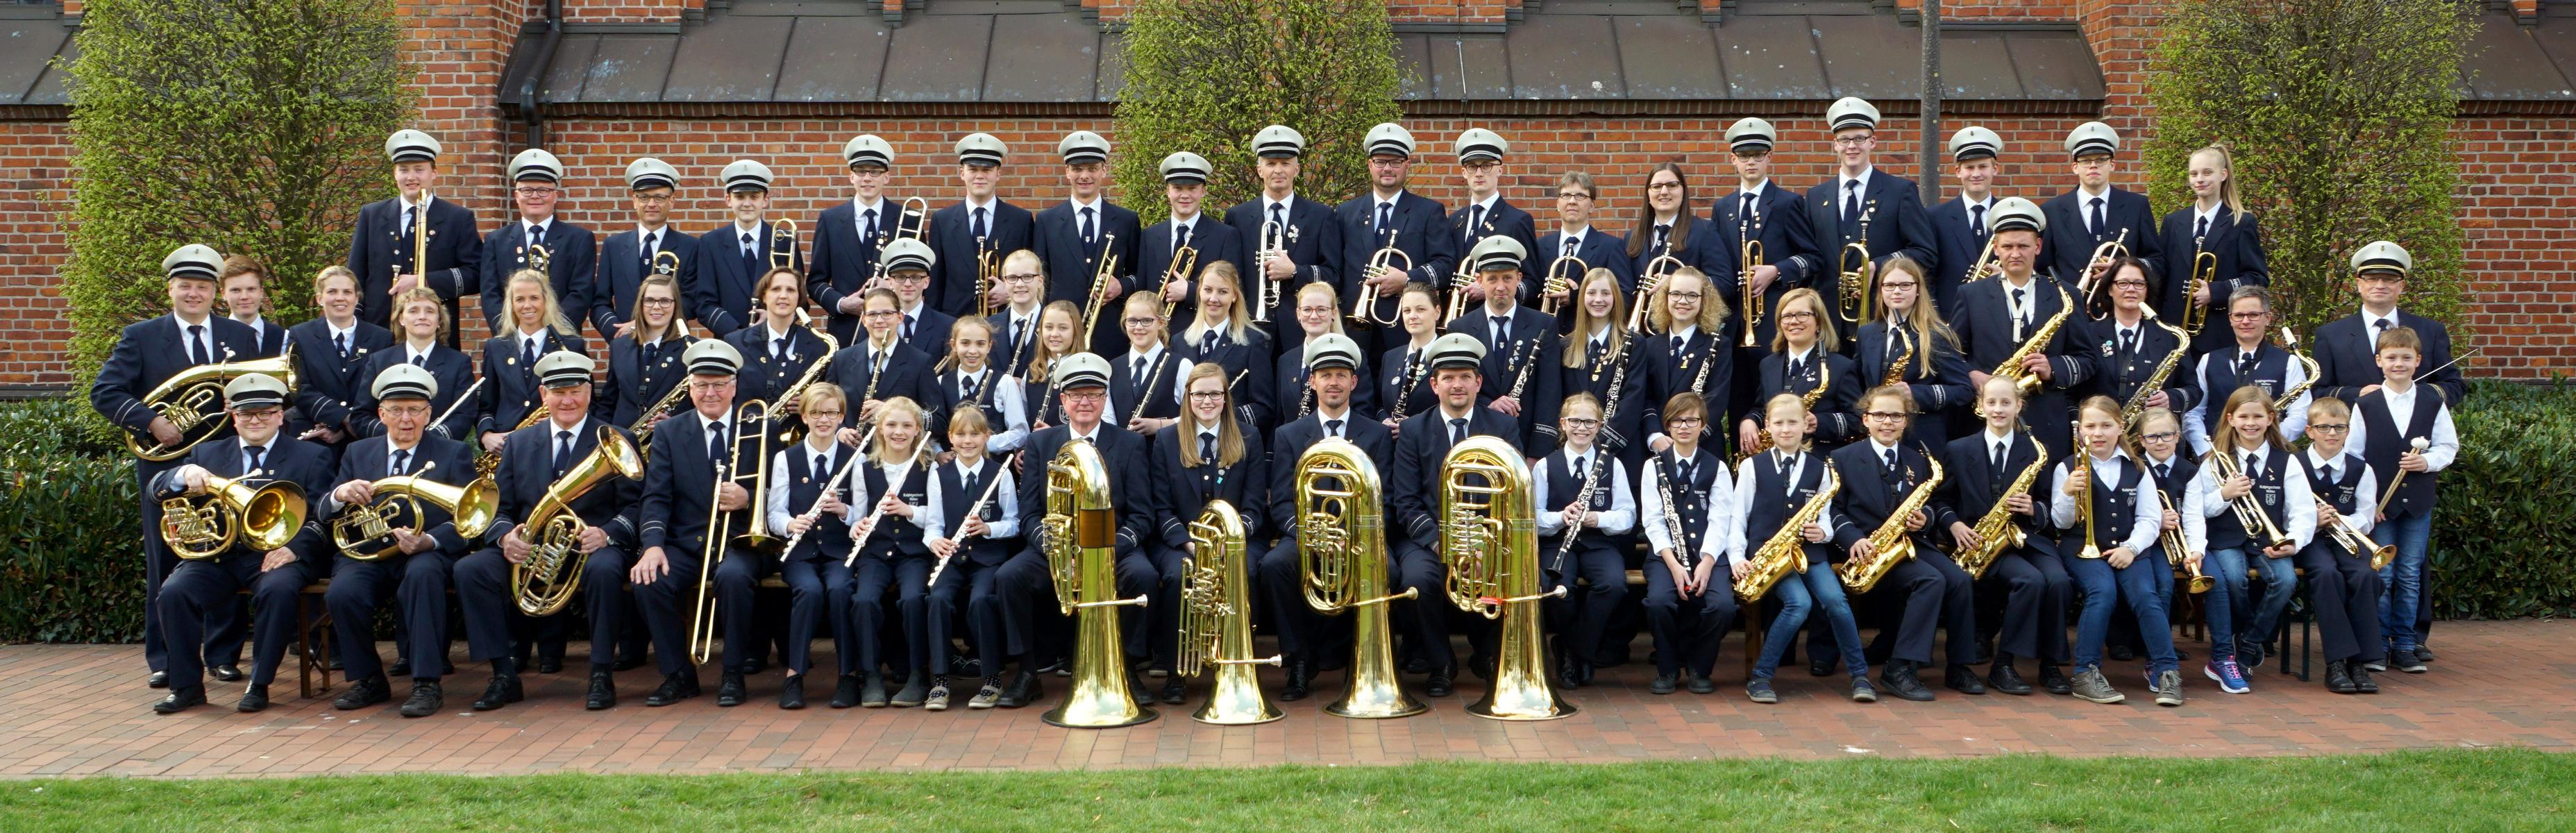 K1600 Orchester 2016